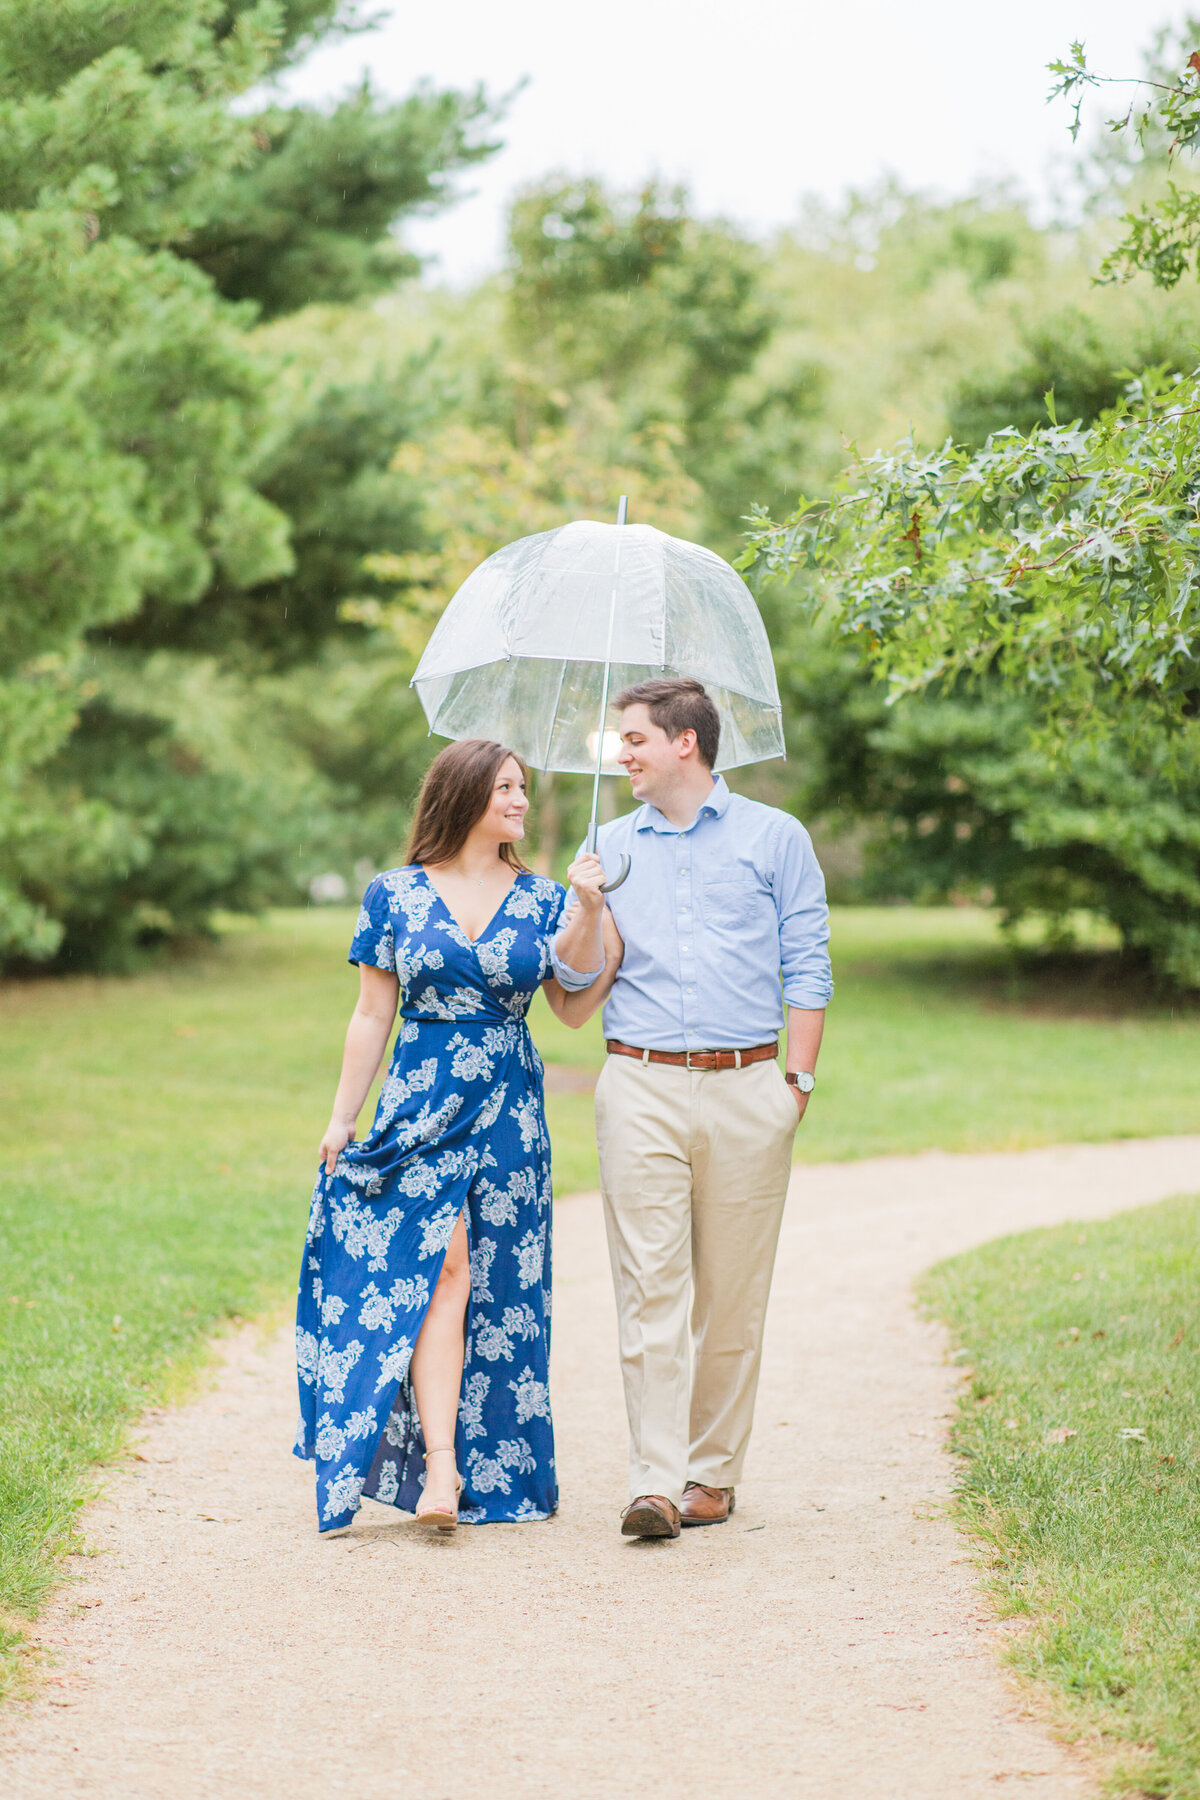 Rainy_Sayen_Gardens_Engagement_Session-27